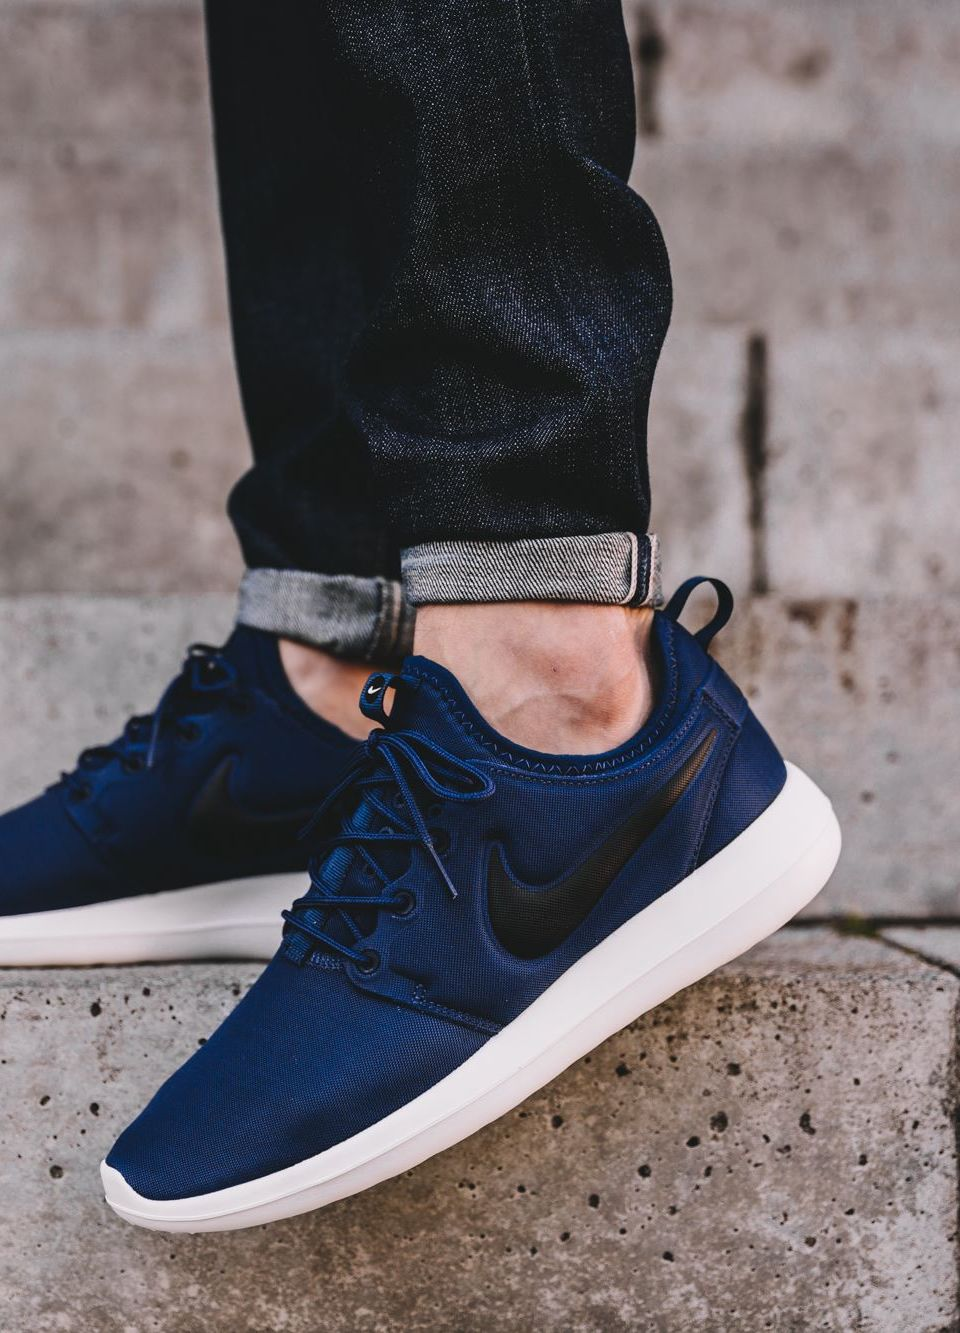 Nike Roshe Two Midnight Navy  sneakernews  Sneakers  StreetStyle  Kicks 2e7d66543d1